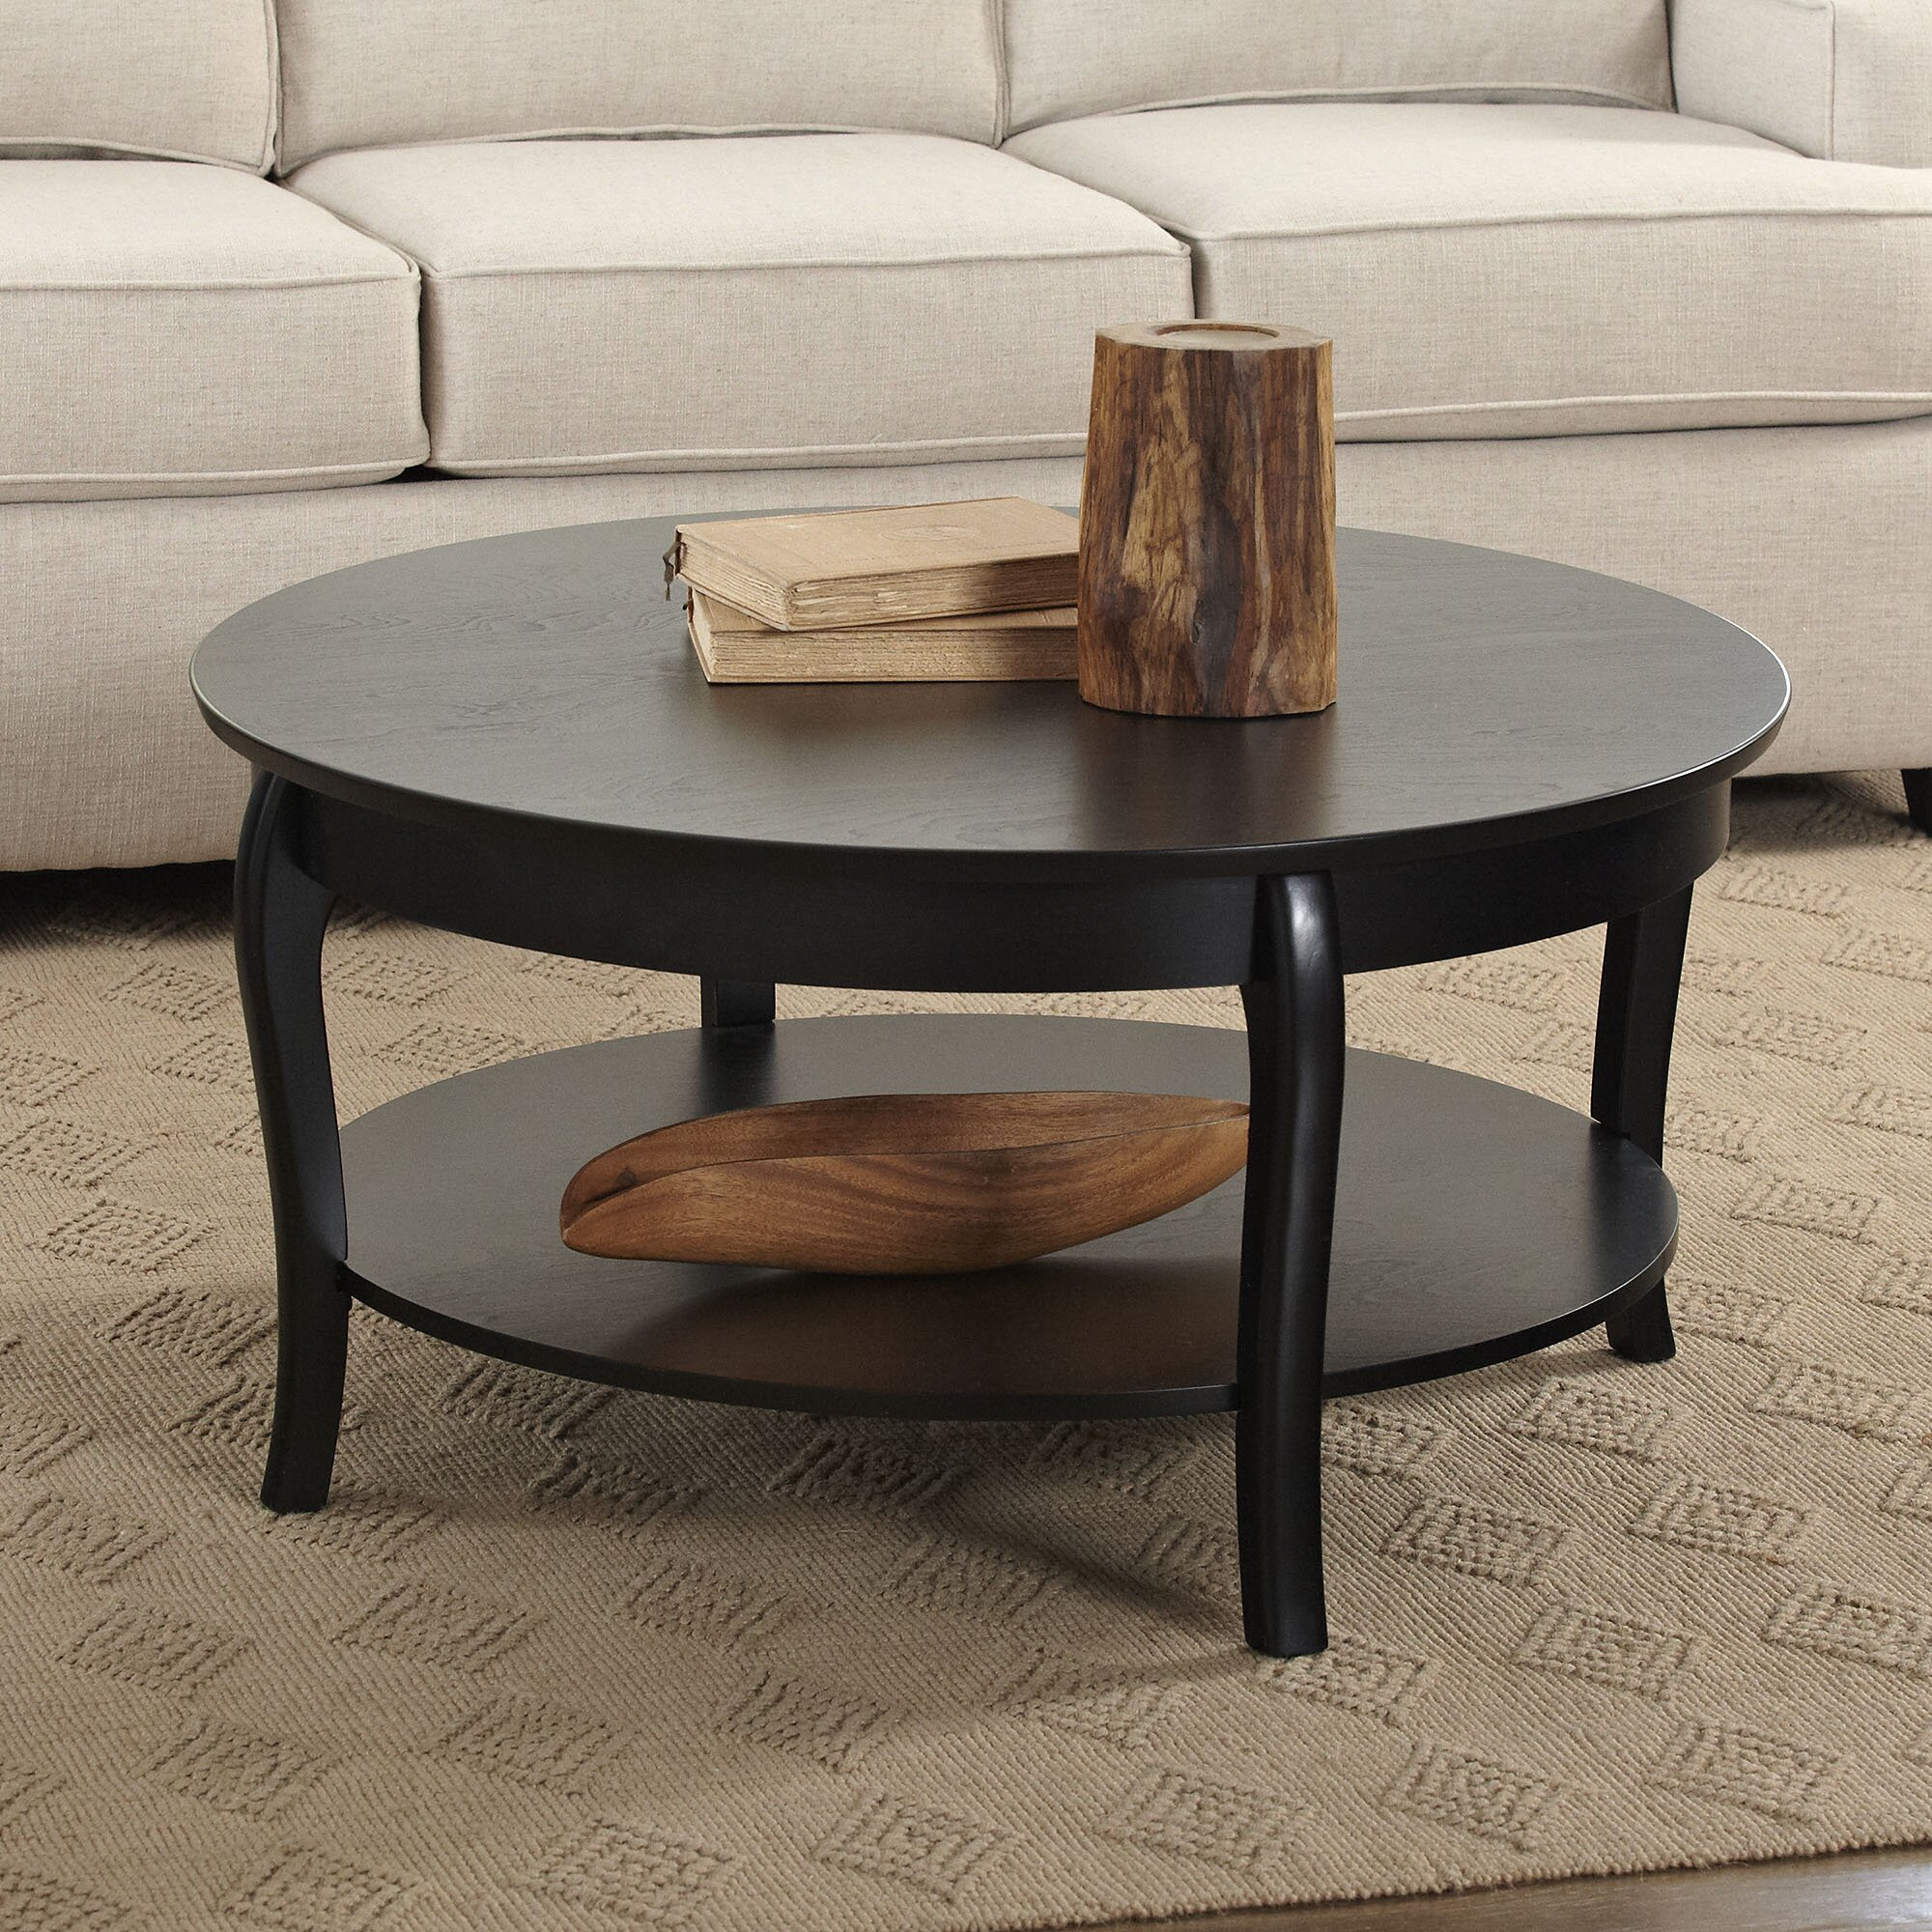 Birch lane alberts round coffee table birch lane for Round centre table designs